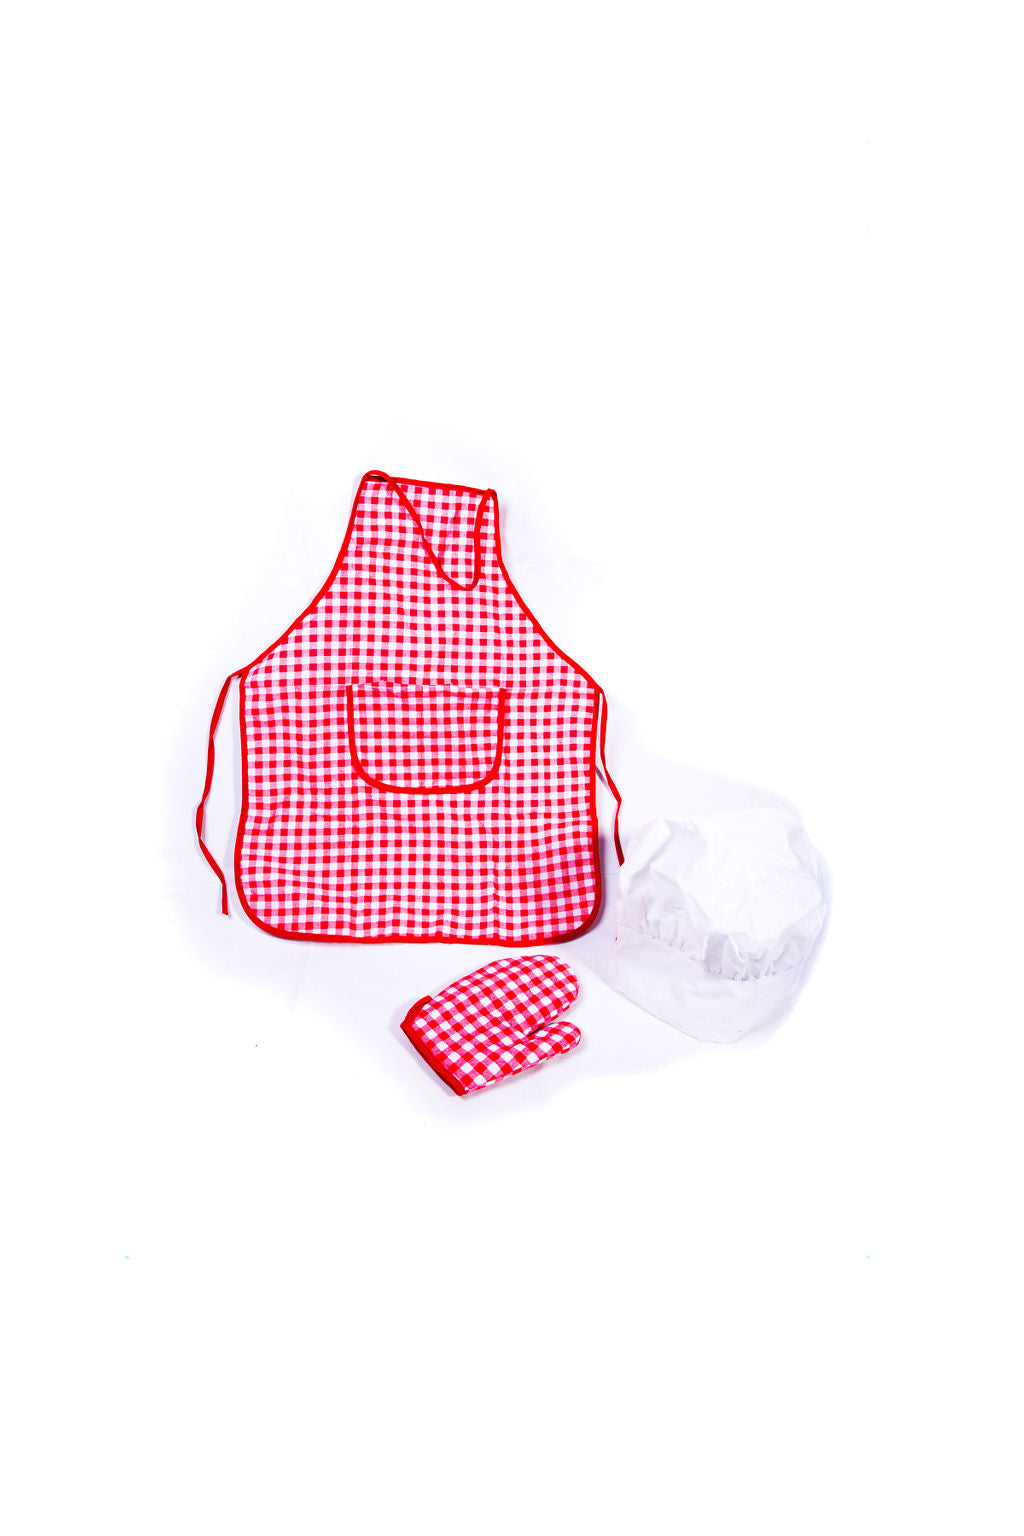 Egmont - Child Apron, Glove & Hat Set